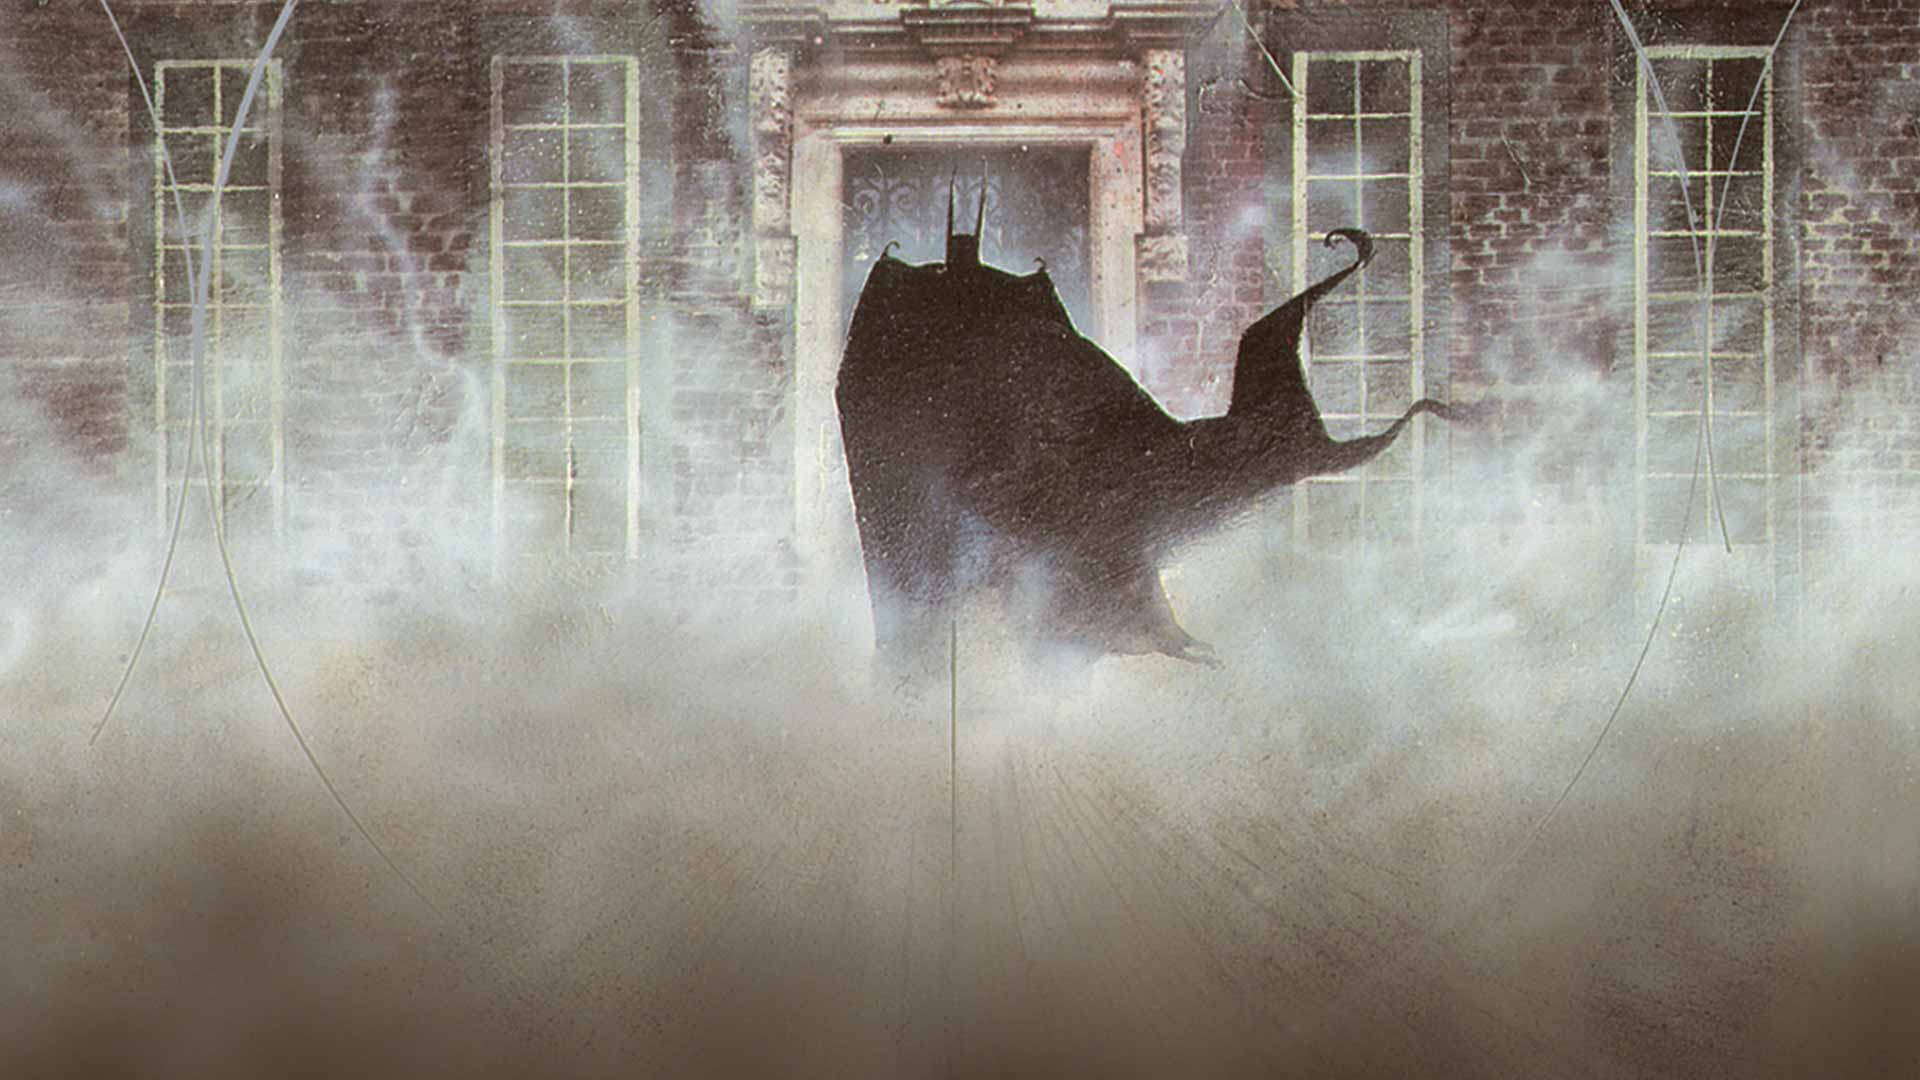 Grant Morrison and Dave McKean's  Arkham Asylum: A Serious House on a Serious Earth  definitely inspired the creepiness and foreboding you get from both the facility and Batman's enemies. ( Art by Dave McKean )